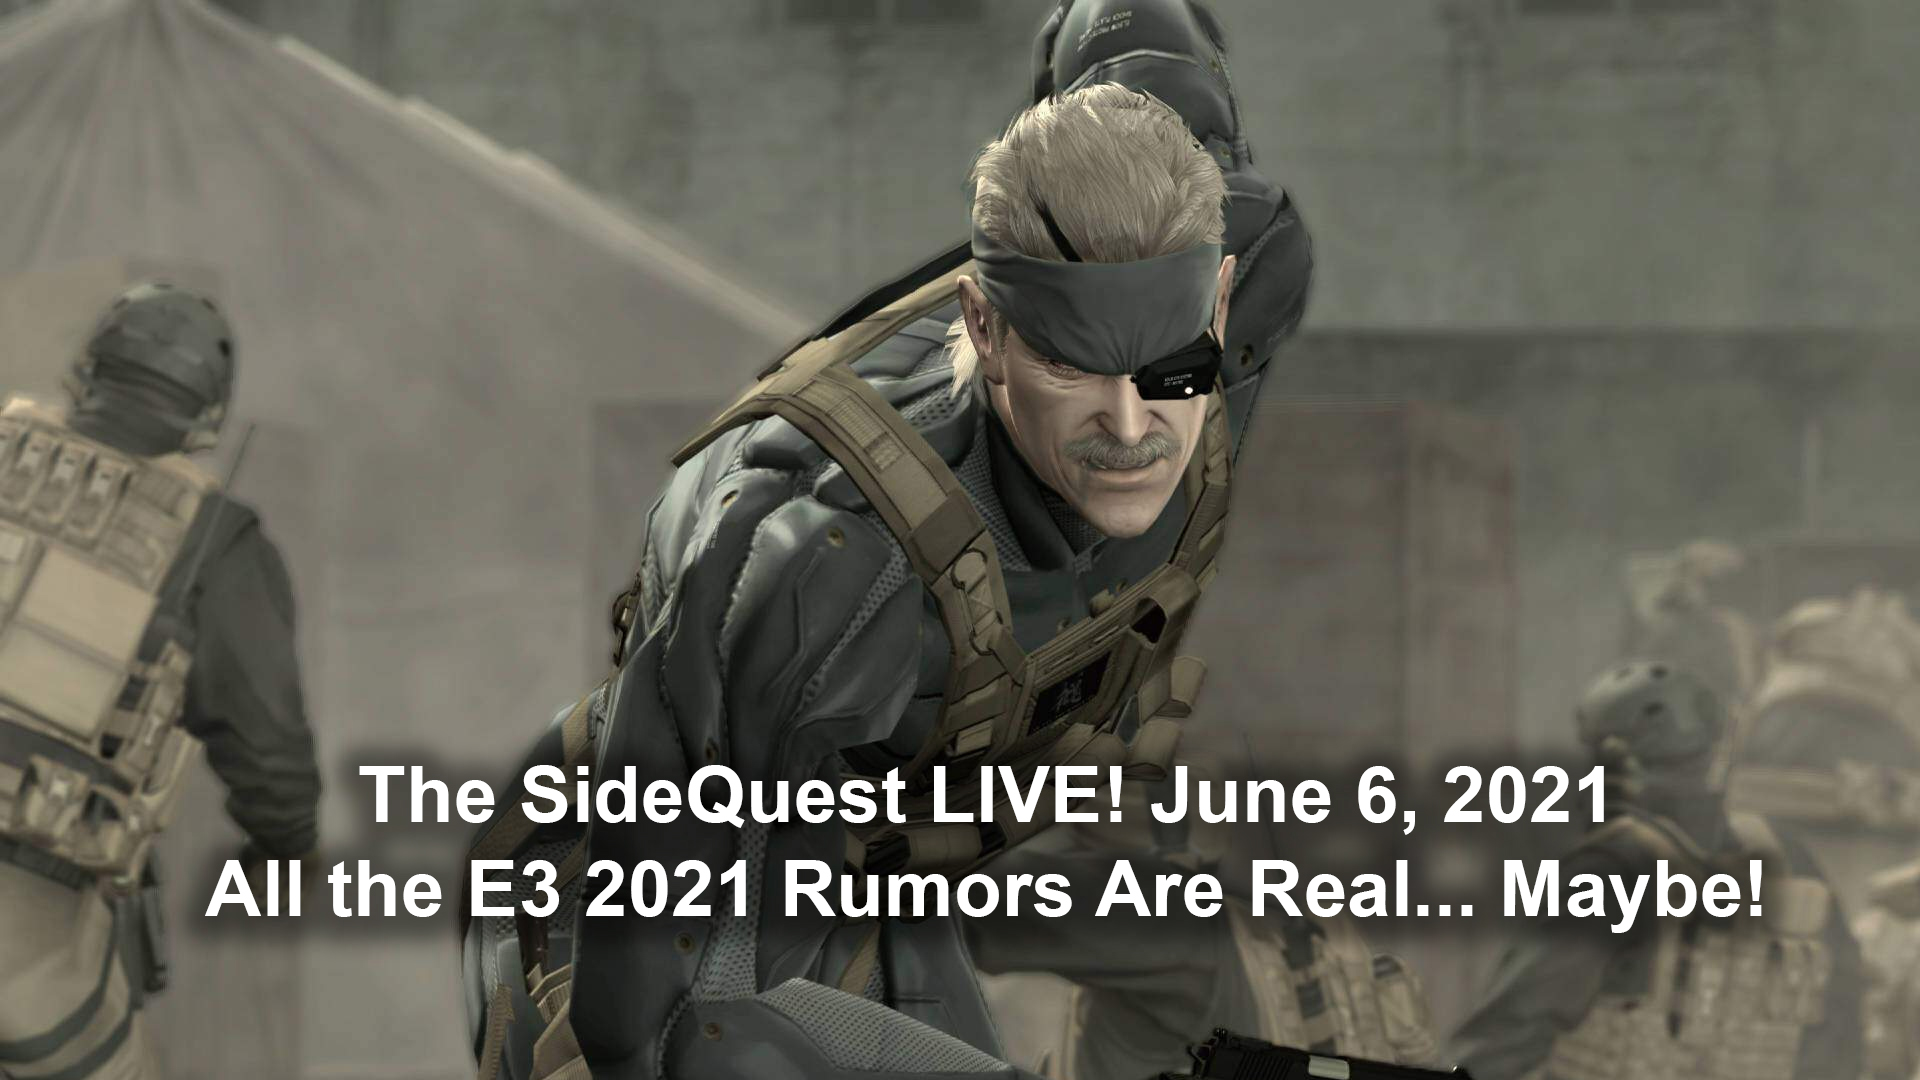 The SideQuest LIVE! June 6, 2021: All the E3 2021 Rumors Are Real… Maybe!